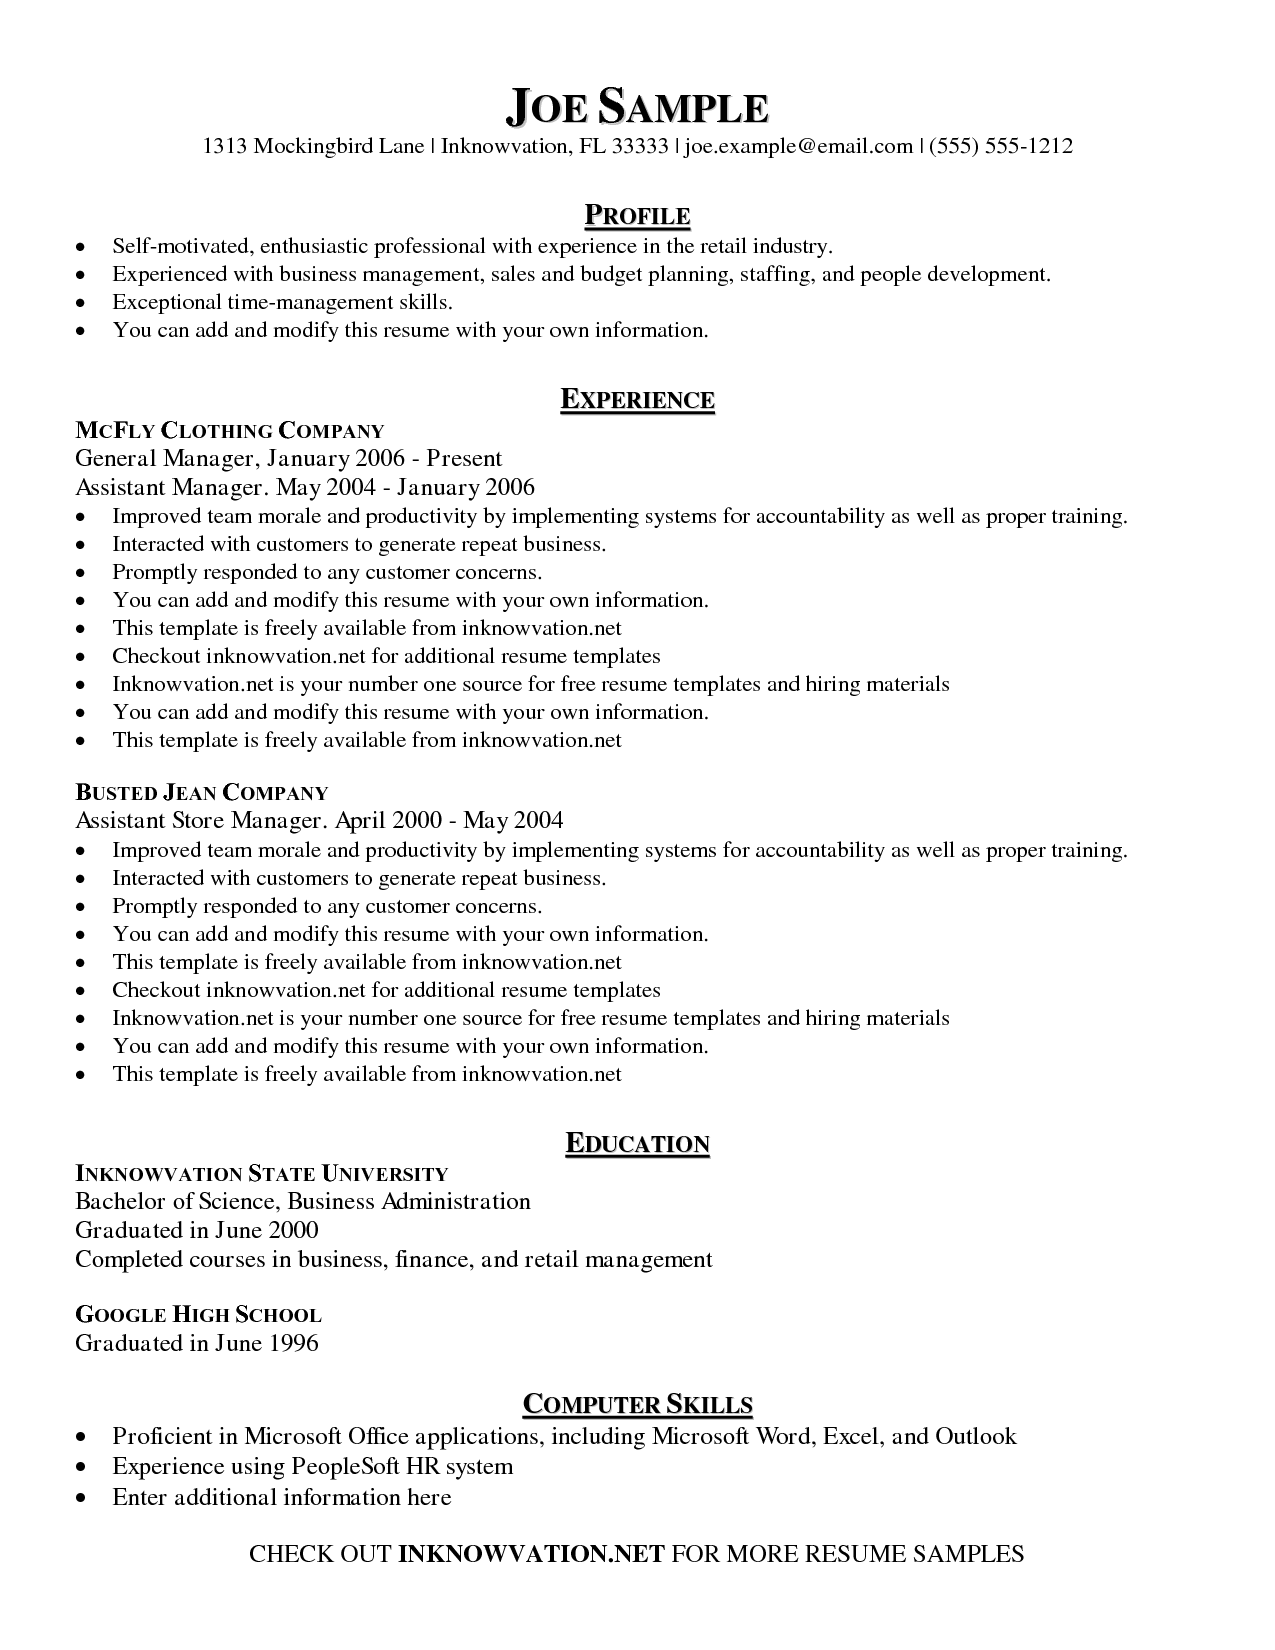 Resume Templates Examples Free   Resume Templates